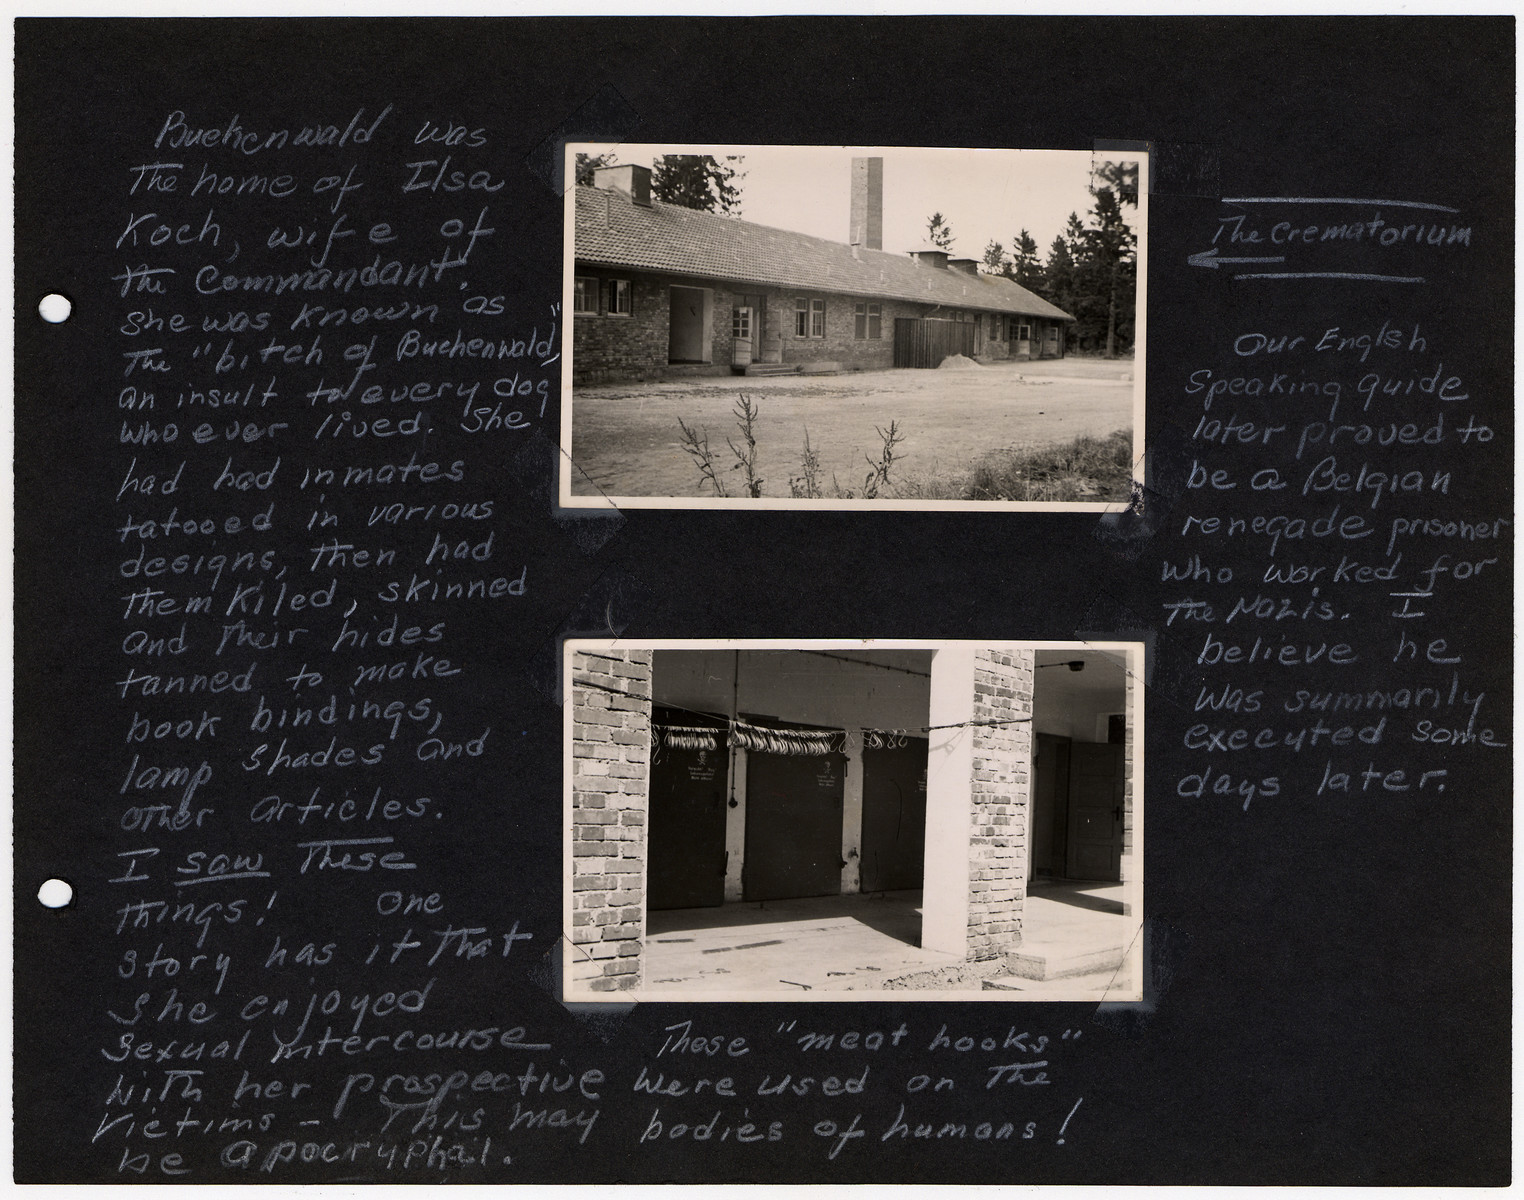 """Photo album page showing the crematoria and gas chambers in Buchenwald.  Original caption reads: """"Buchenwald was the home of Ilsa Koch, wife of the Commandant. She was known as the """"bitch of Buchenwald"""", an insult to every dog who ever lived. She had her inmates tatooed in various designs, then had them killed, then skinned and their hides tanned to make book bindings, lamp shades, and other articles. I saw these things! One story has it that she enjoyed sexual intercourse with her victims- this may be apocryphal. These """"meat hooks"""" were used on the bodies of humans!  (the creamatorium)  Our English speaking guide later proved to be a Belgian renegade prisoner who worked for the Nazis. I believe he was summarily executed some days later."""""""